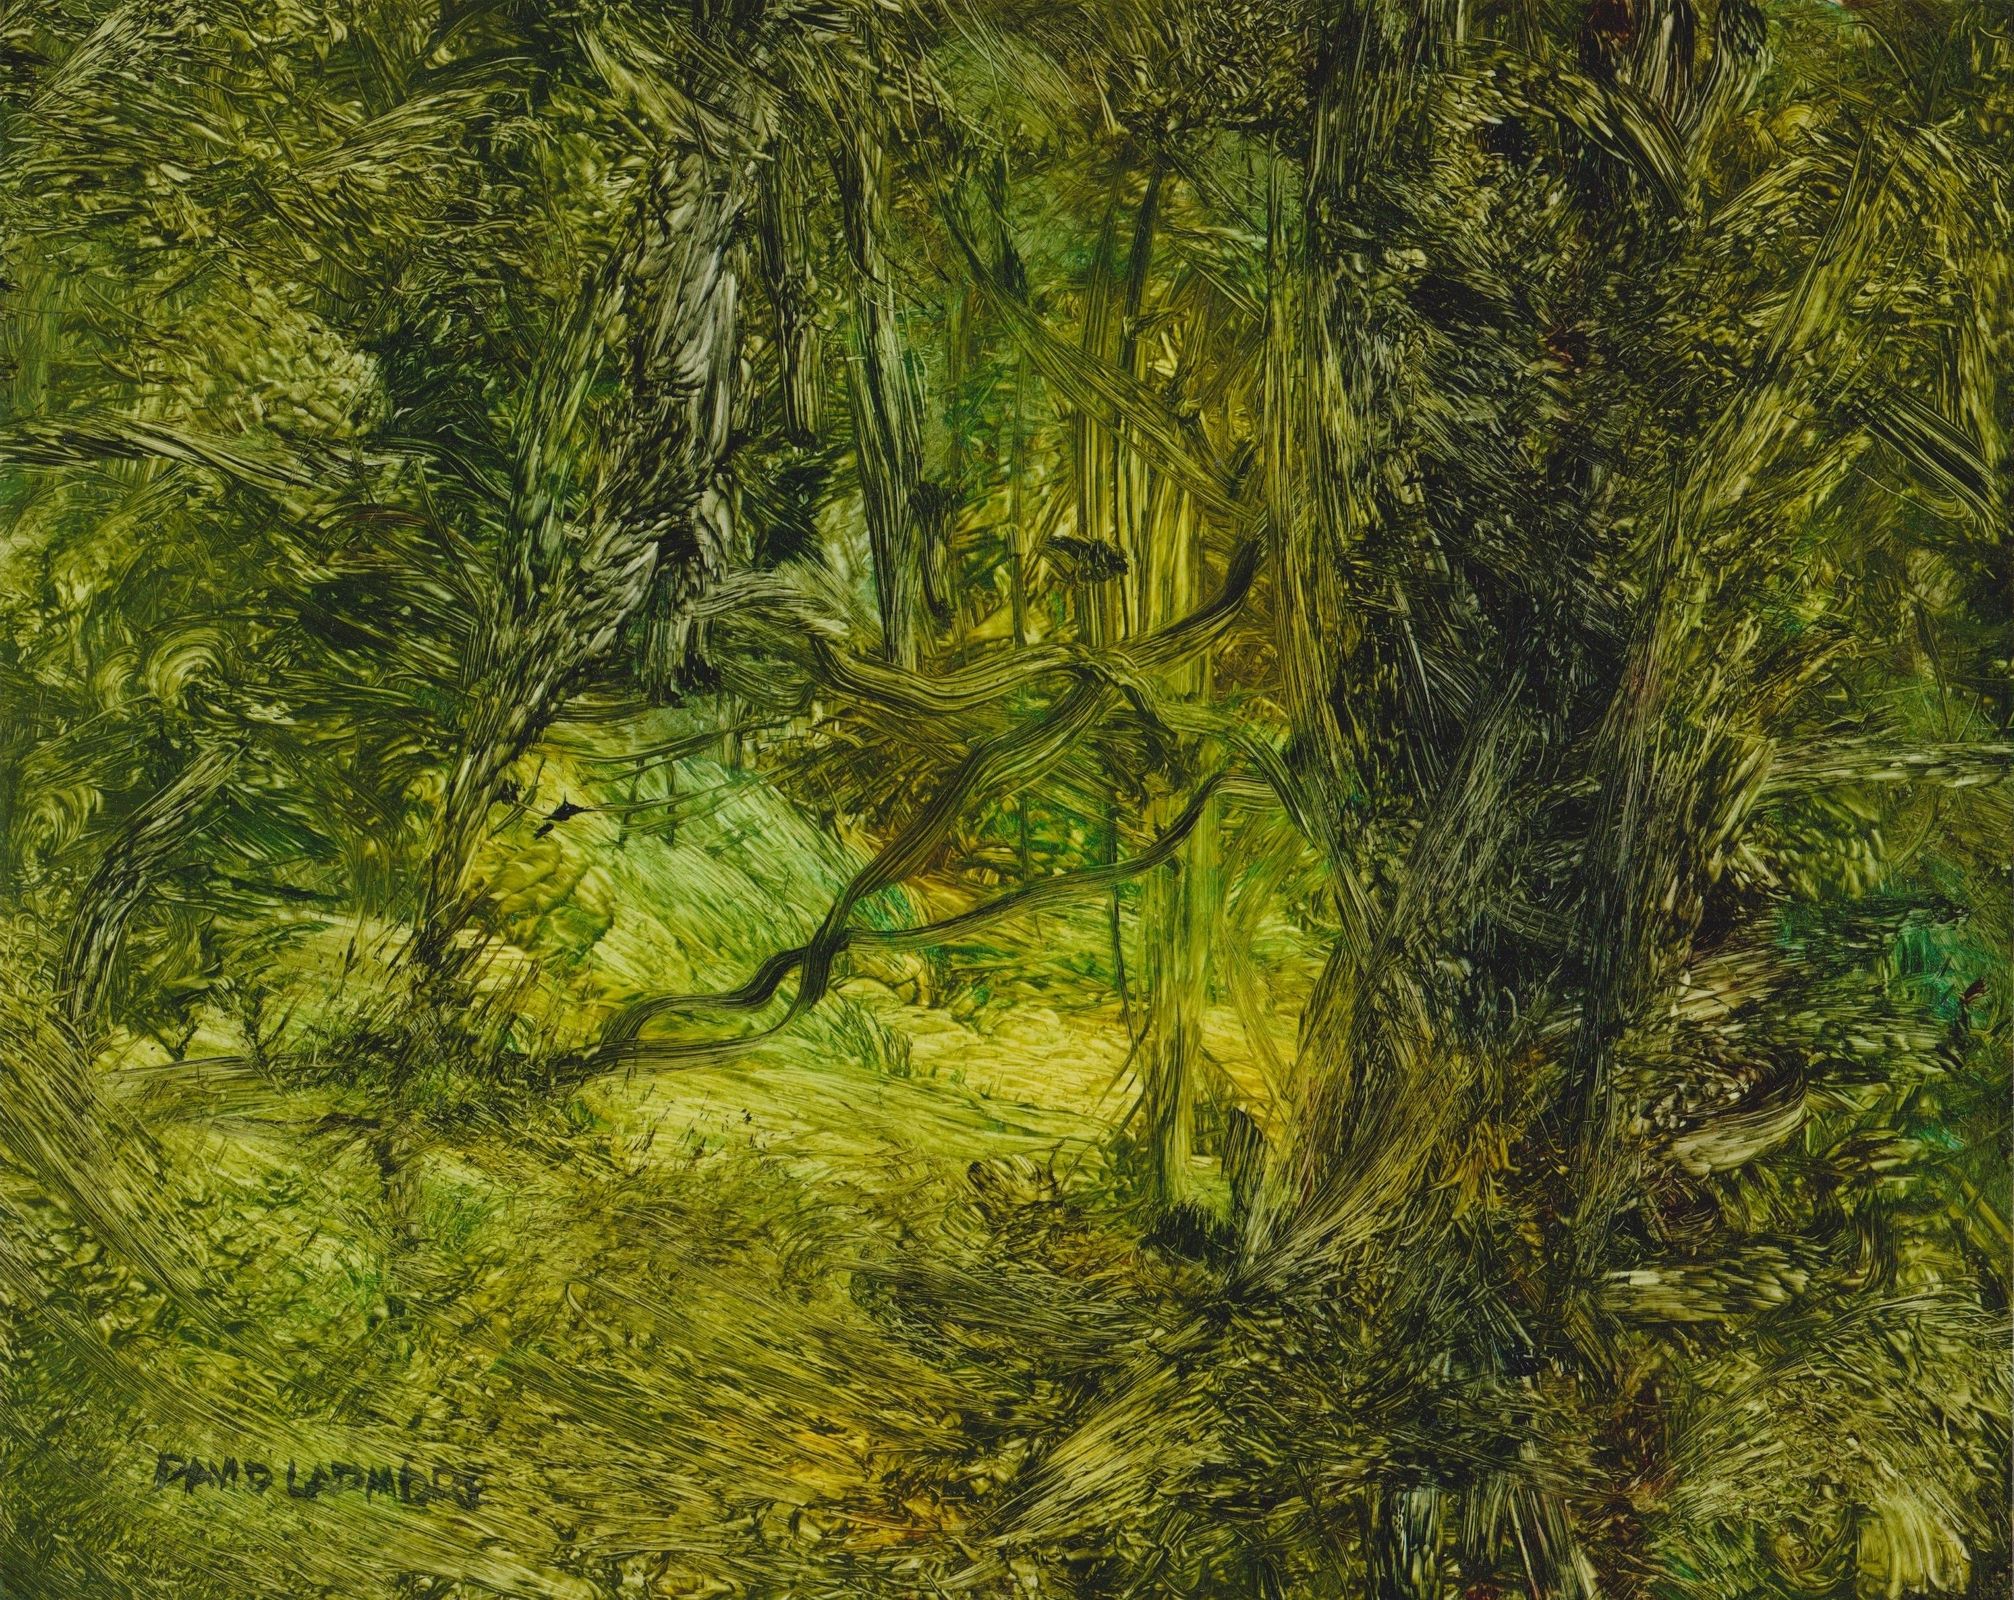 image of landscape oil painting Woodlands 102 by David Ladmore